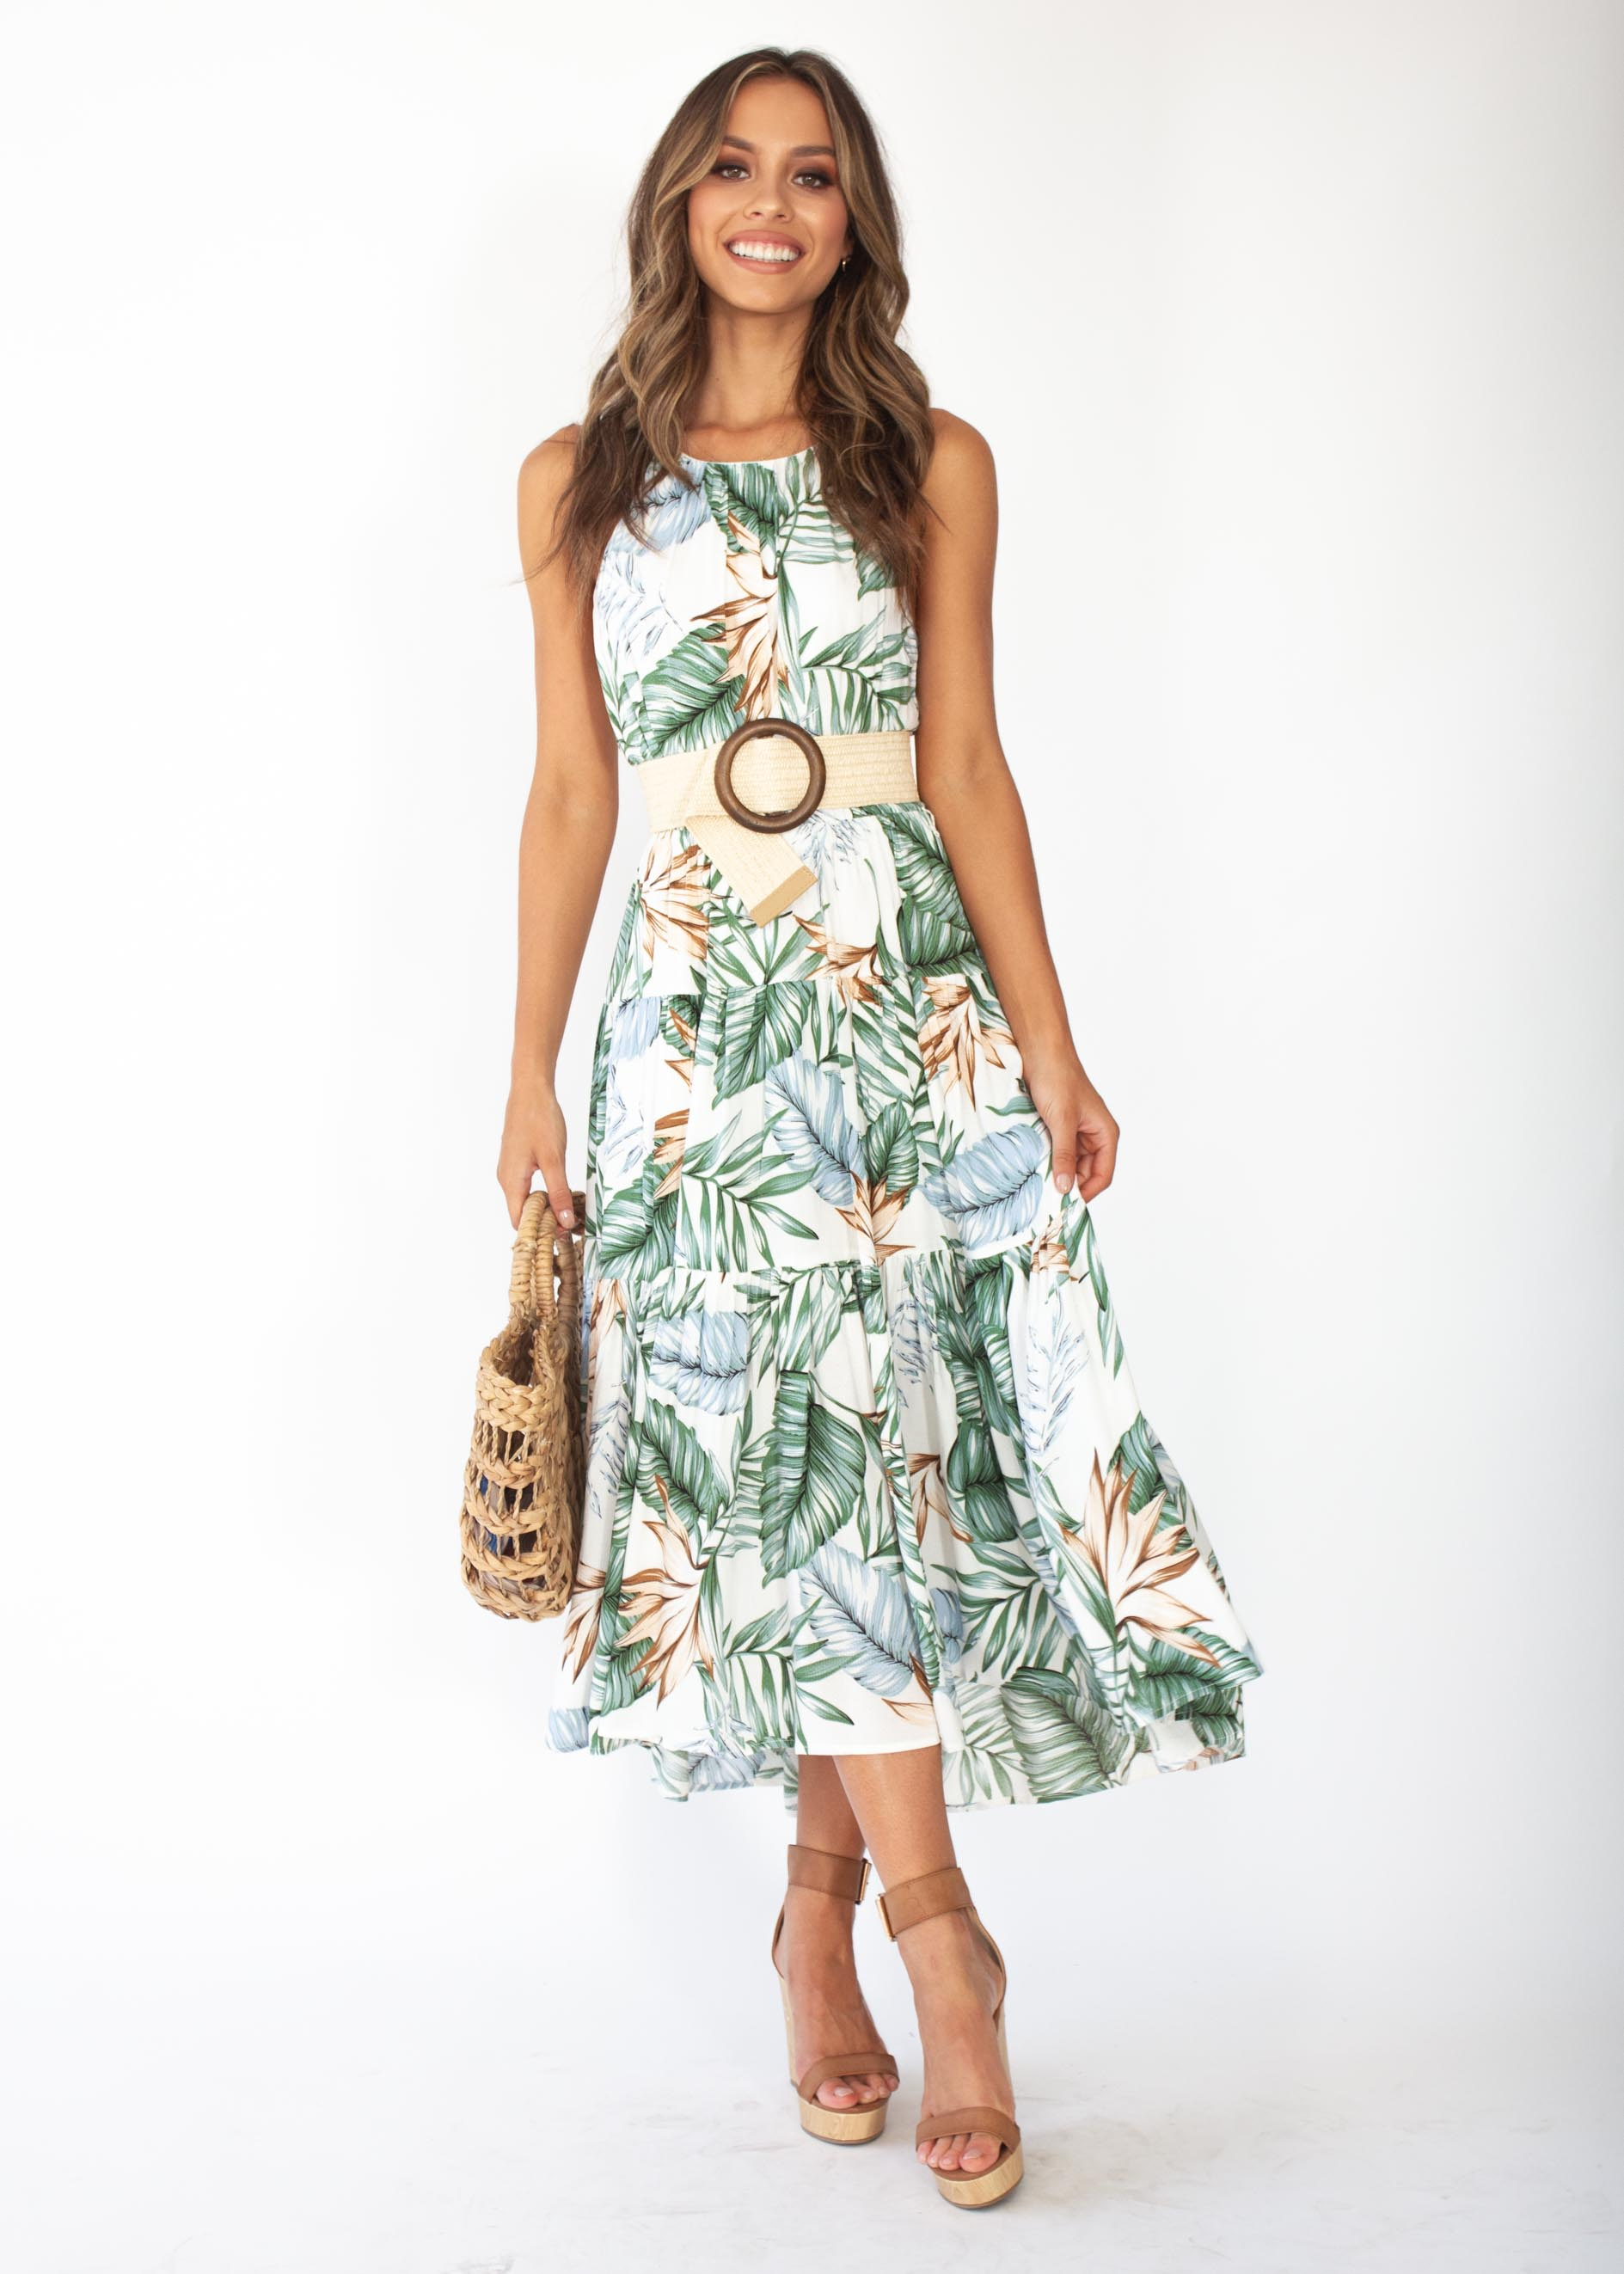 Women's Solstace Midi Dress - White Green Palm Print